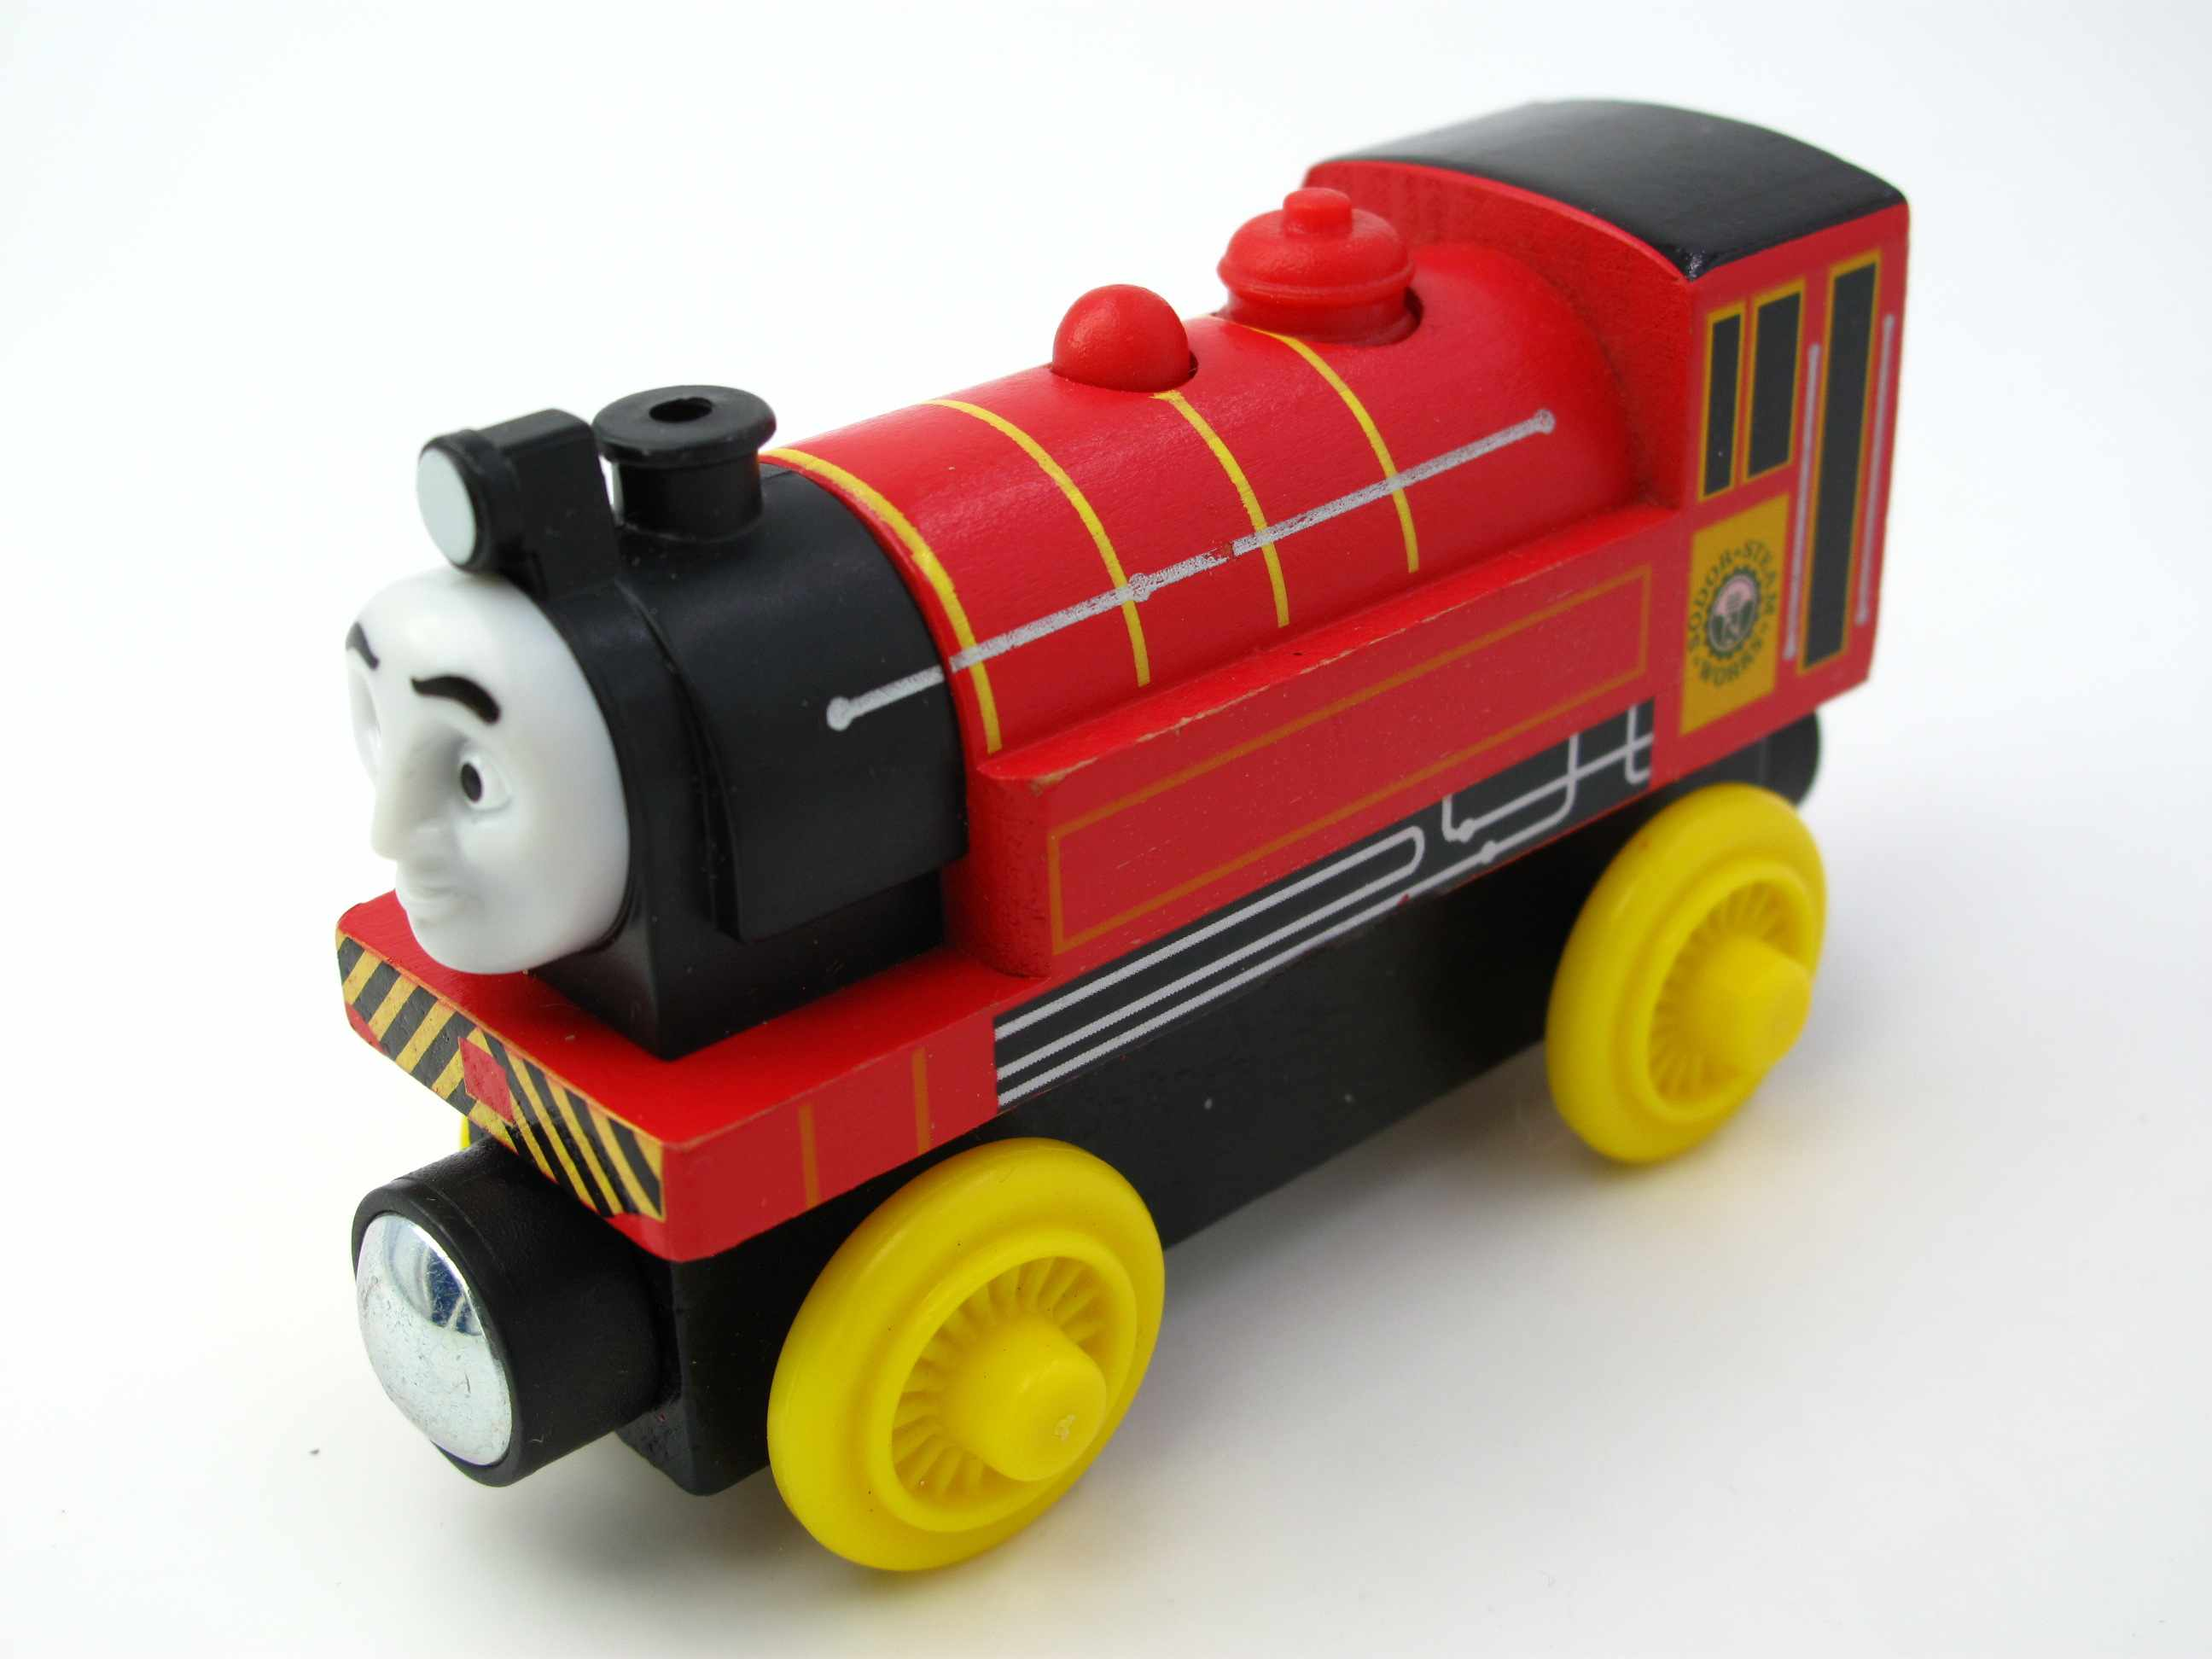 Wooden Train T137W VICTOR Magnetic Truck Car Locomotive Engine Railway Toys for Children